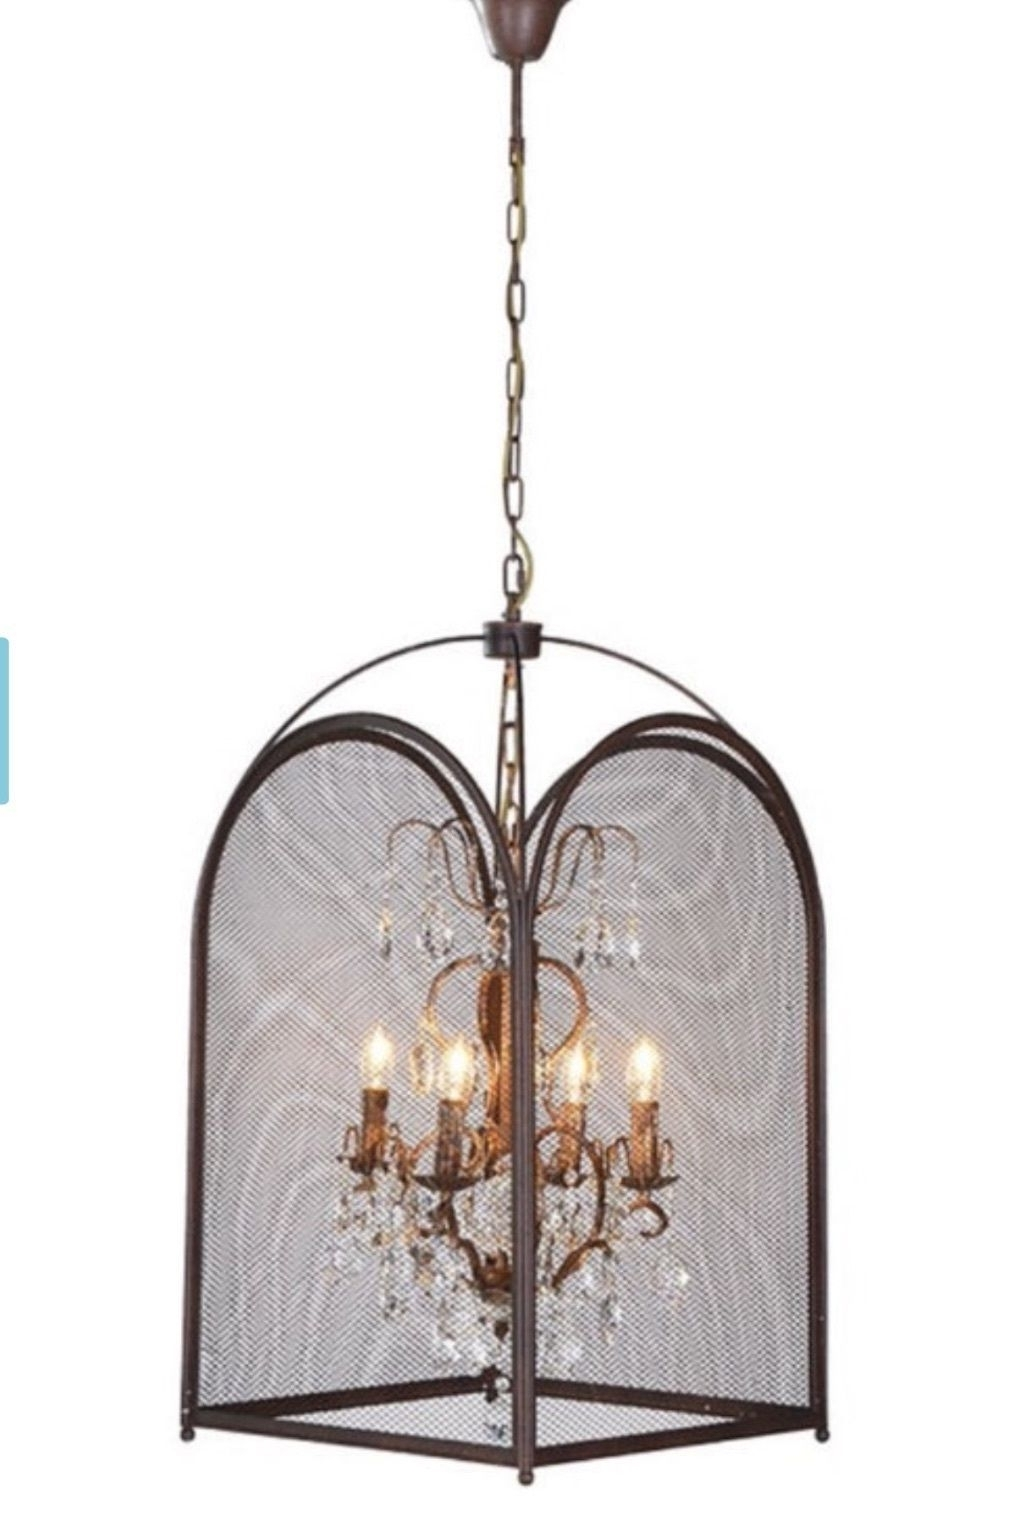 Popular Large Statement Birdcage Vintage Industrial Shabby Chic Caged Intended For Caged Chandelier (View 16 of 20)